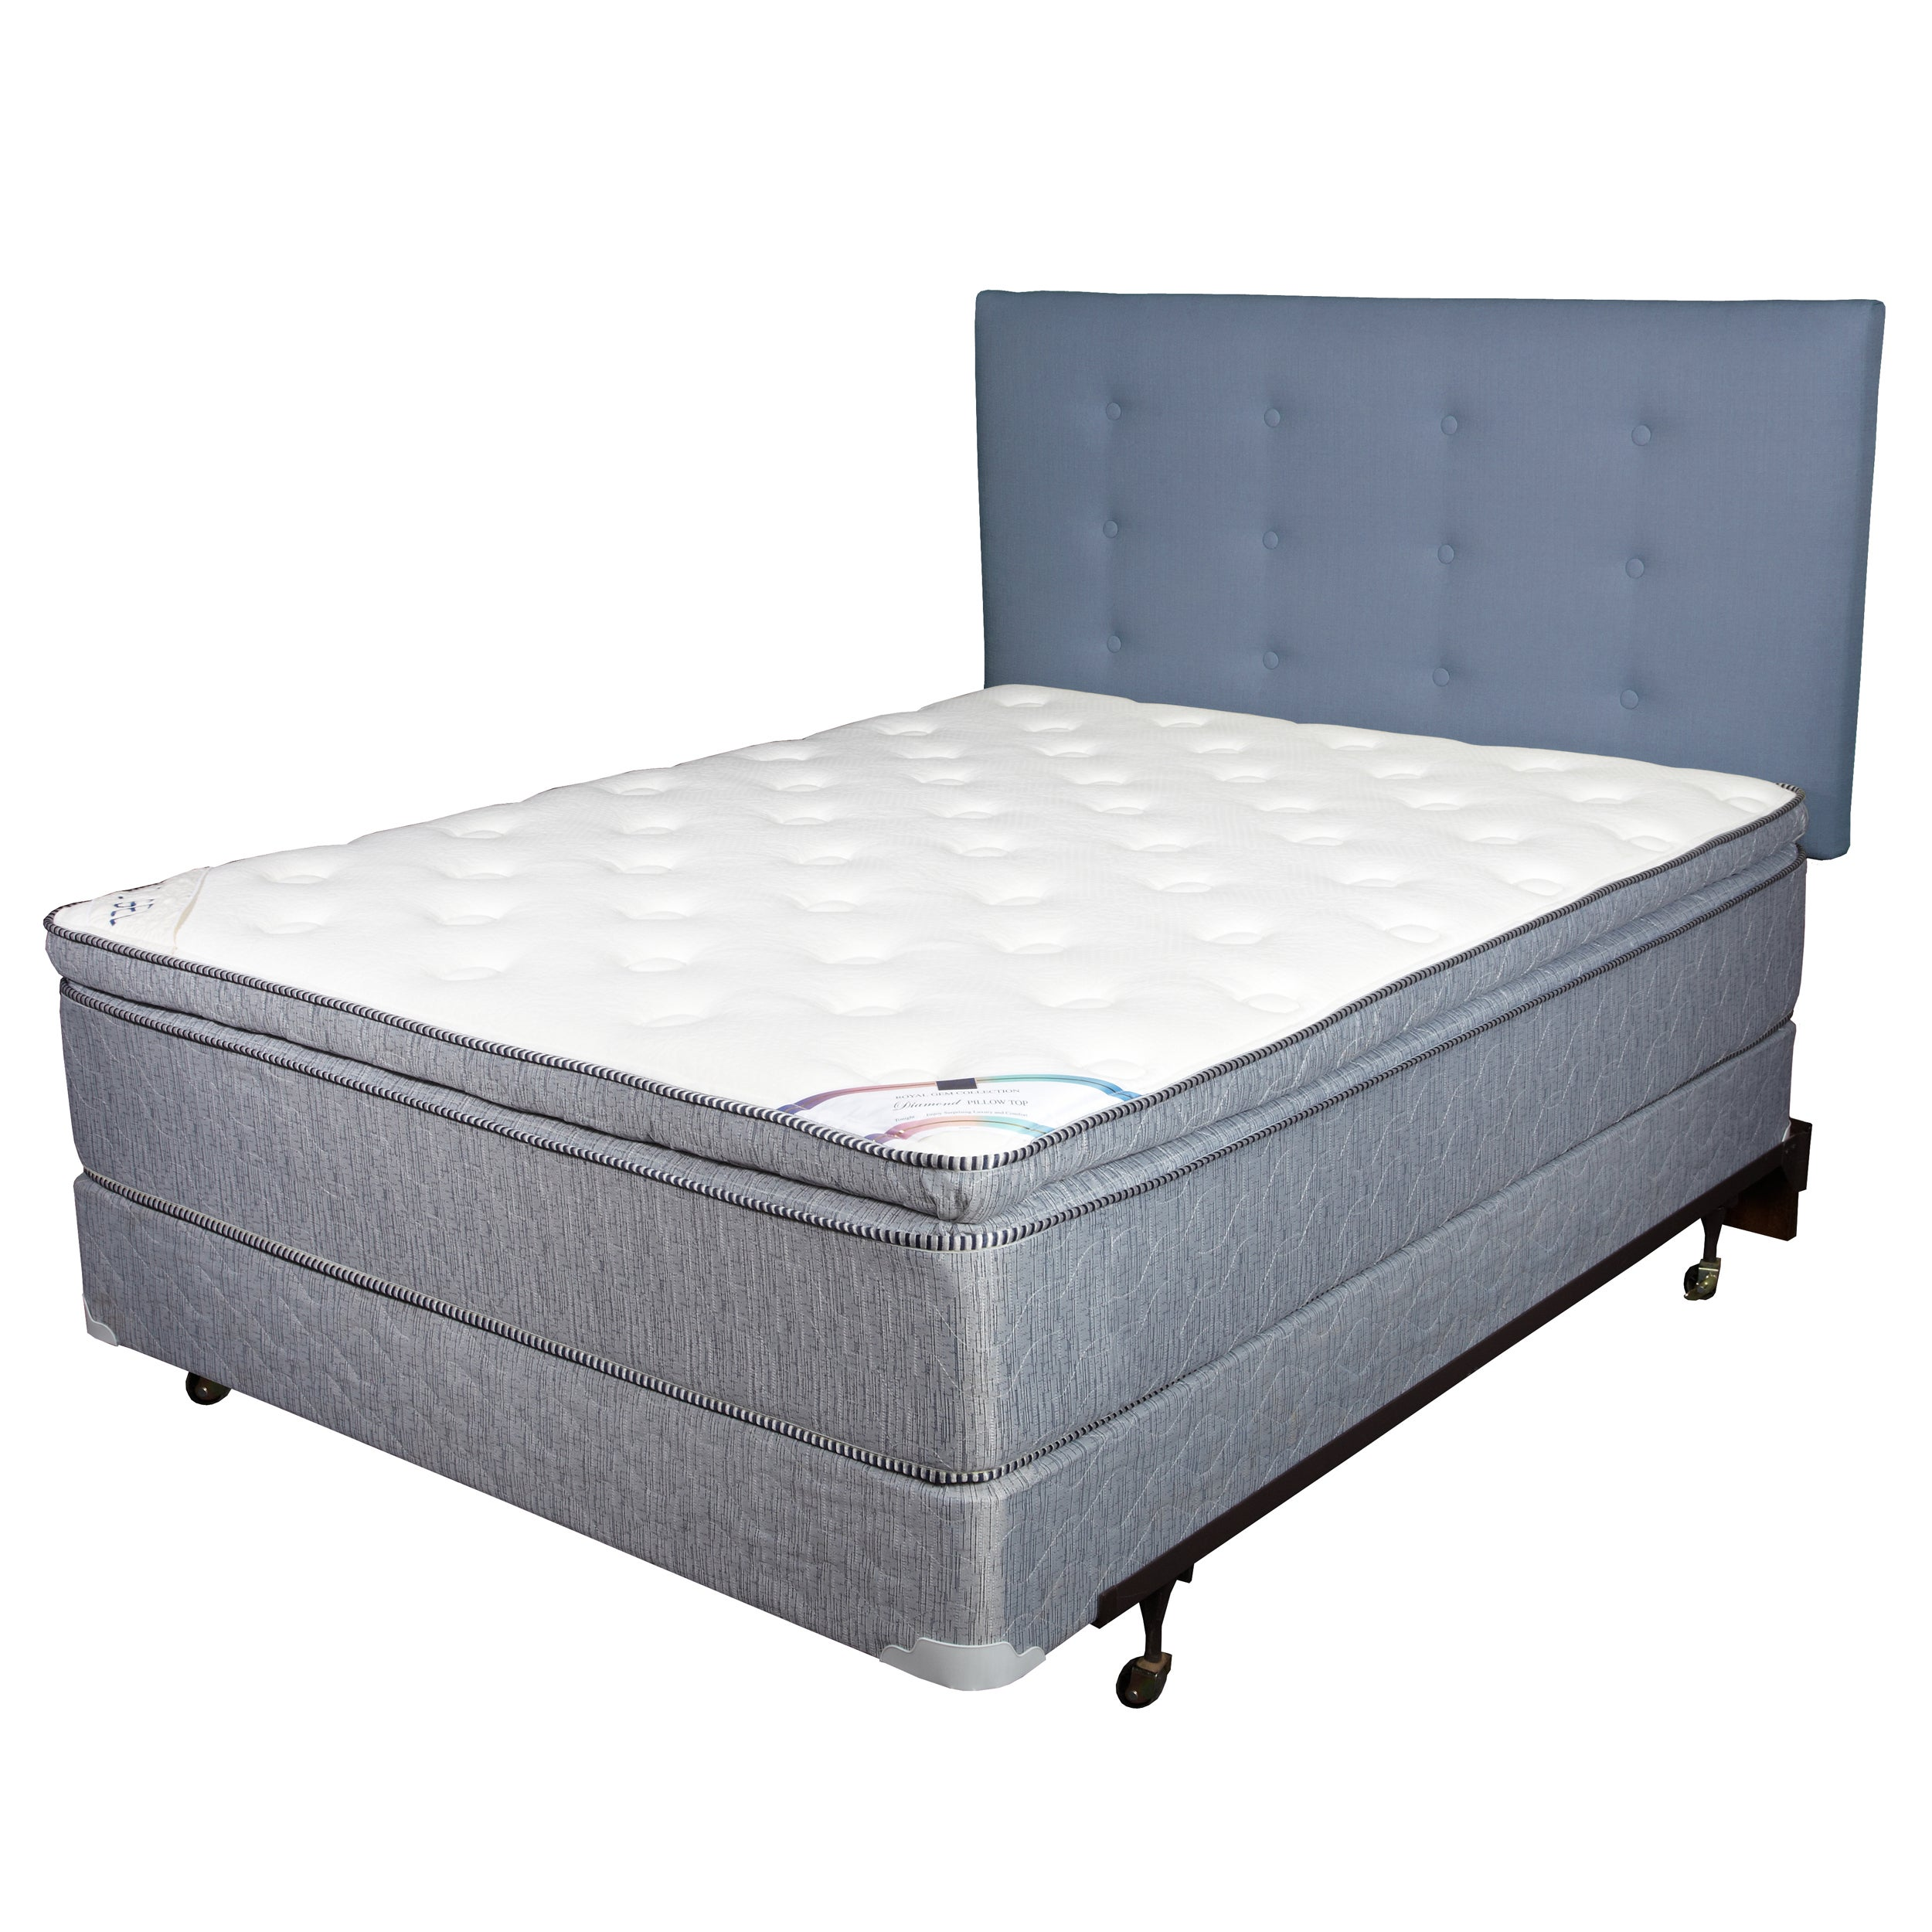 bed fortytwo mattress d b size mikala home queen furniture cor